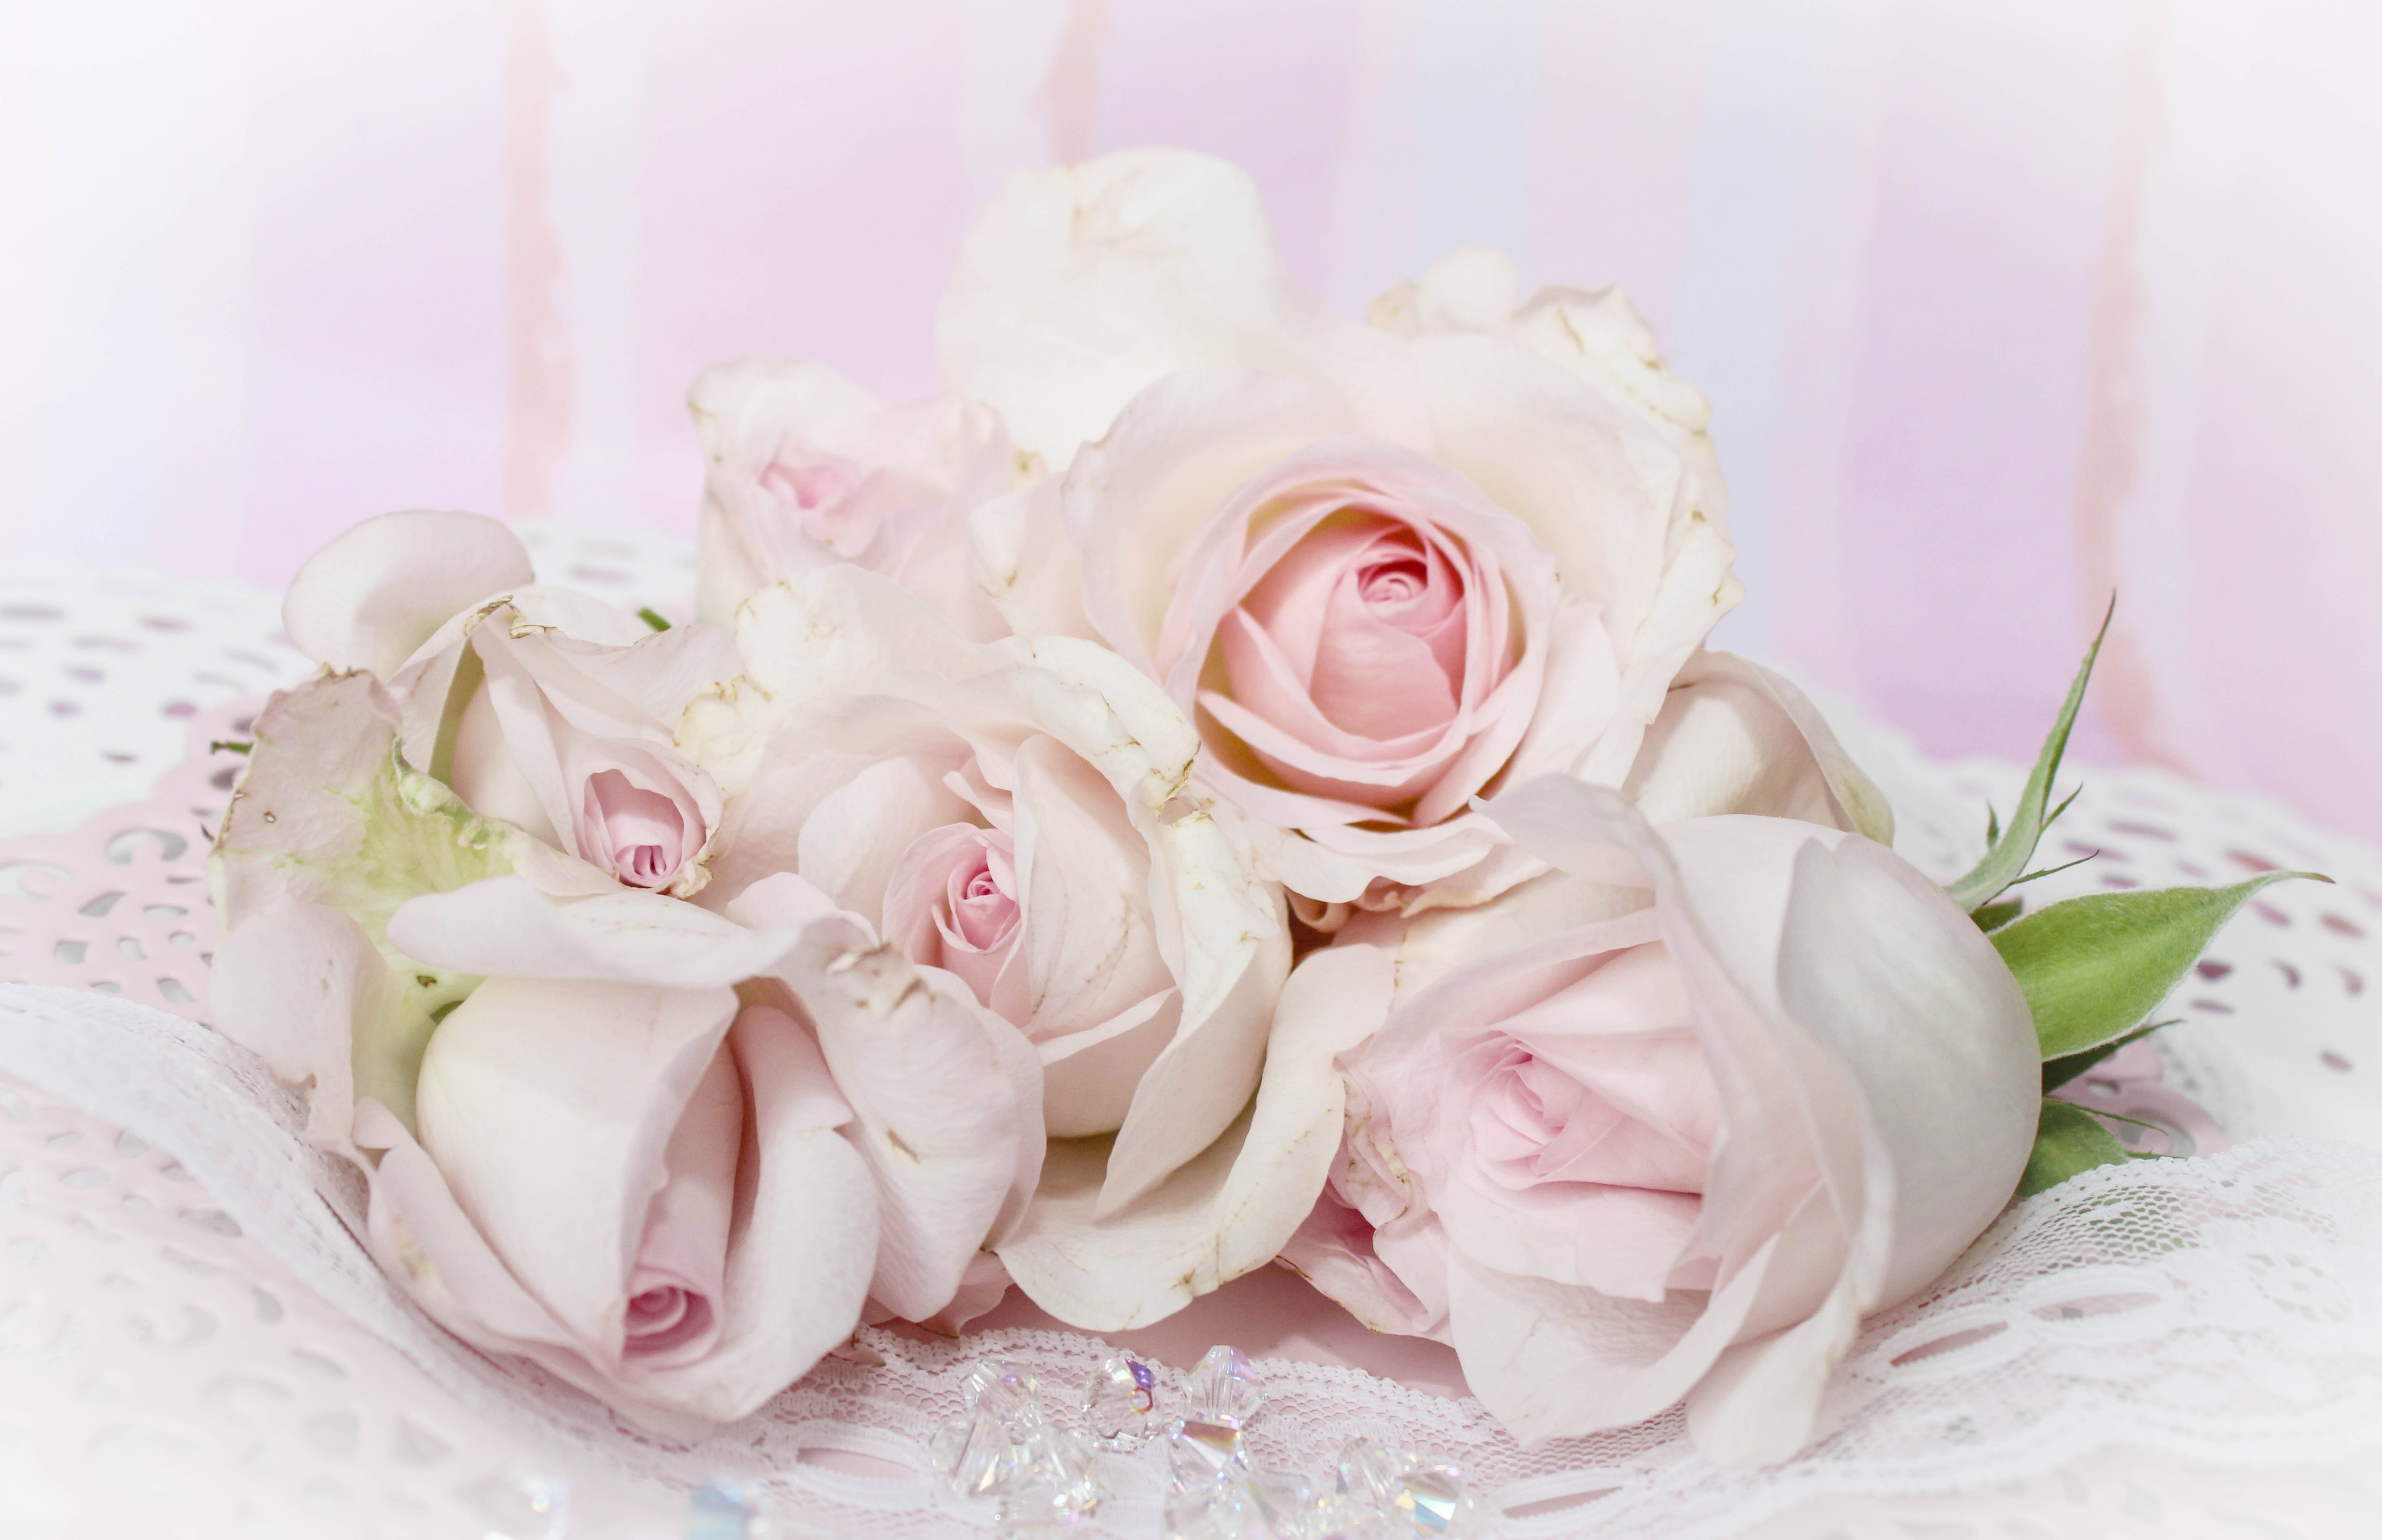 Free stock photo of romantic, vintage, roses, pink